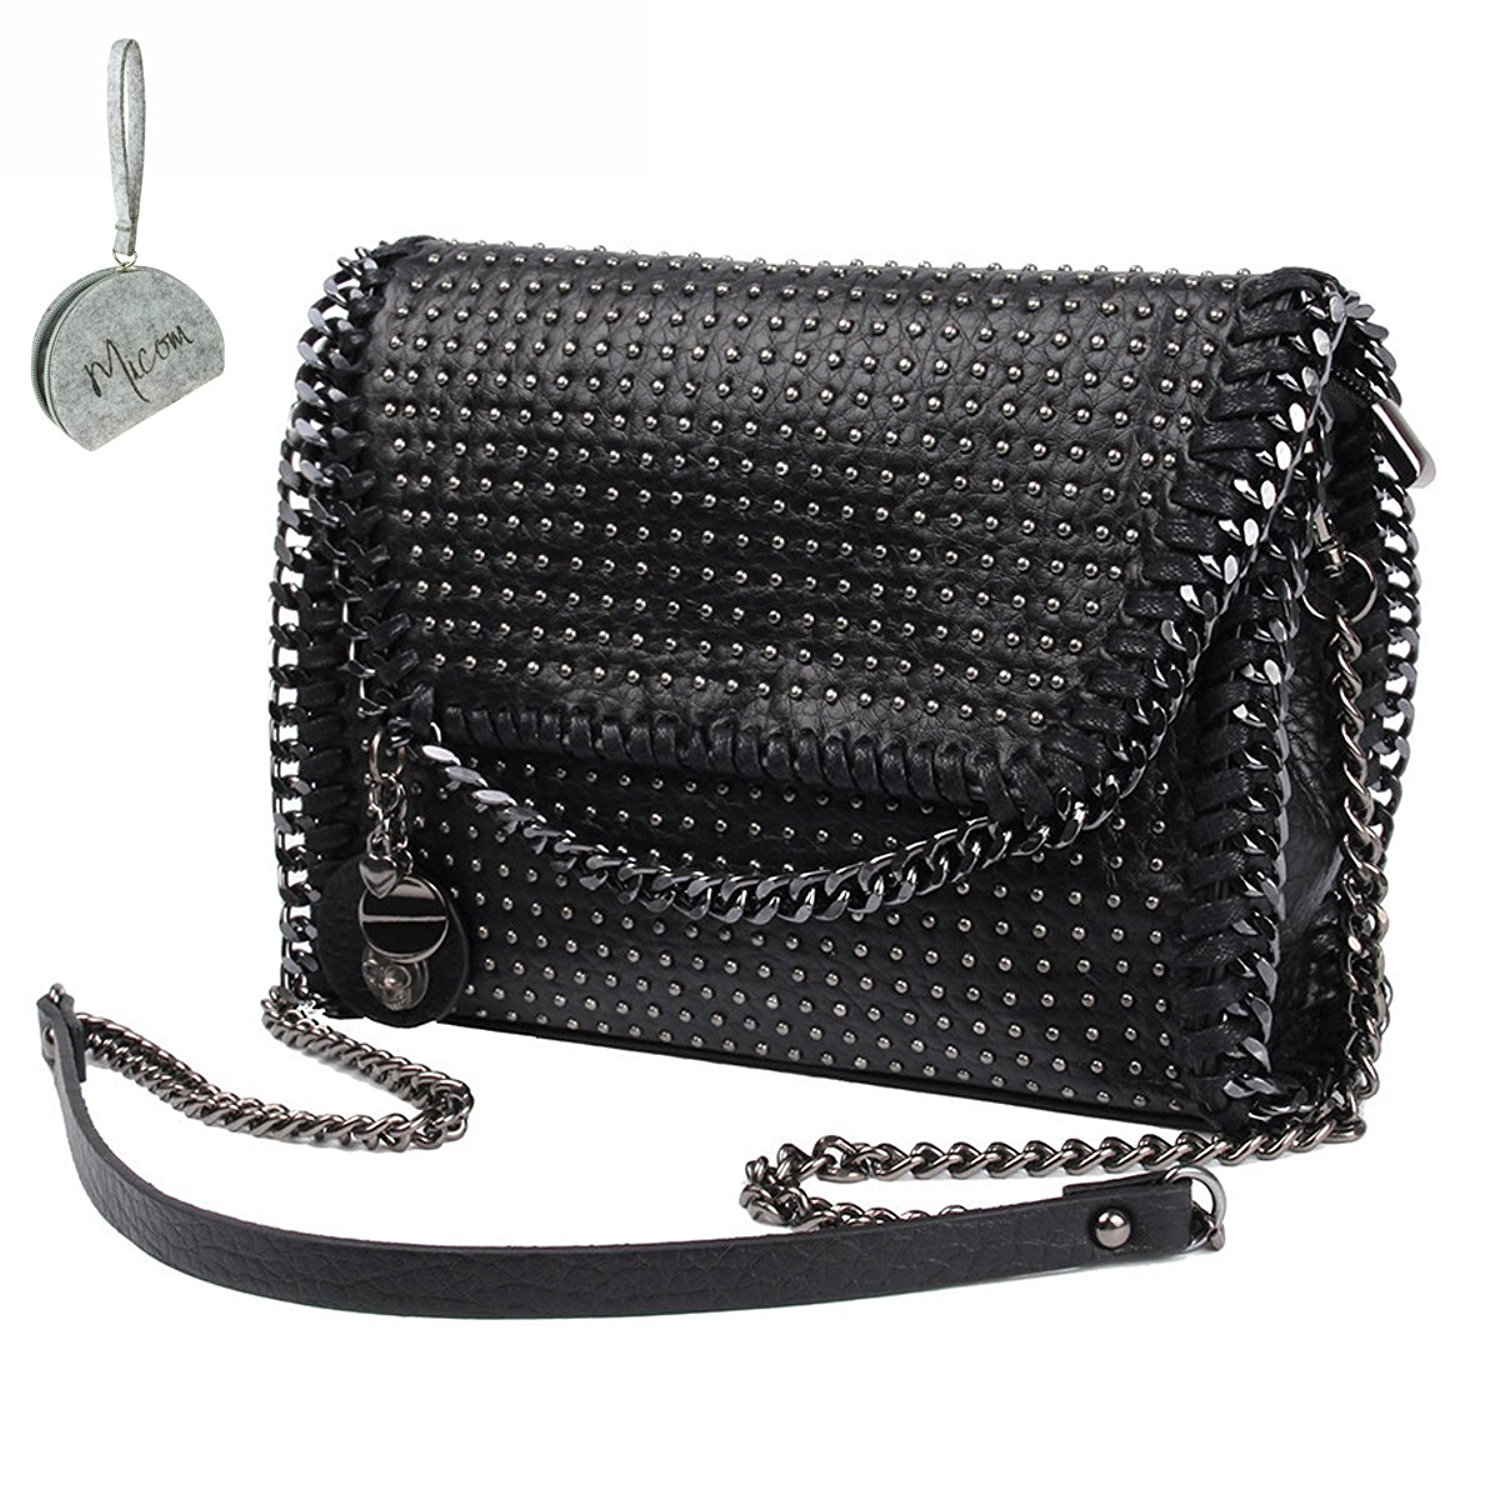 44a9e8c4c1f2 Get Quotations · Micom Punk Rivets Studded Metal Chain Pu Leather Women  Tote Shoulder Crossbody Bag with Skull Decoration